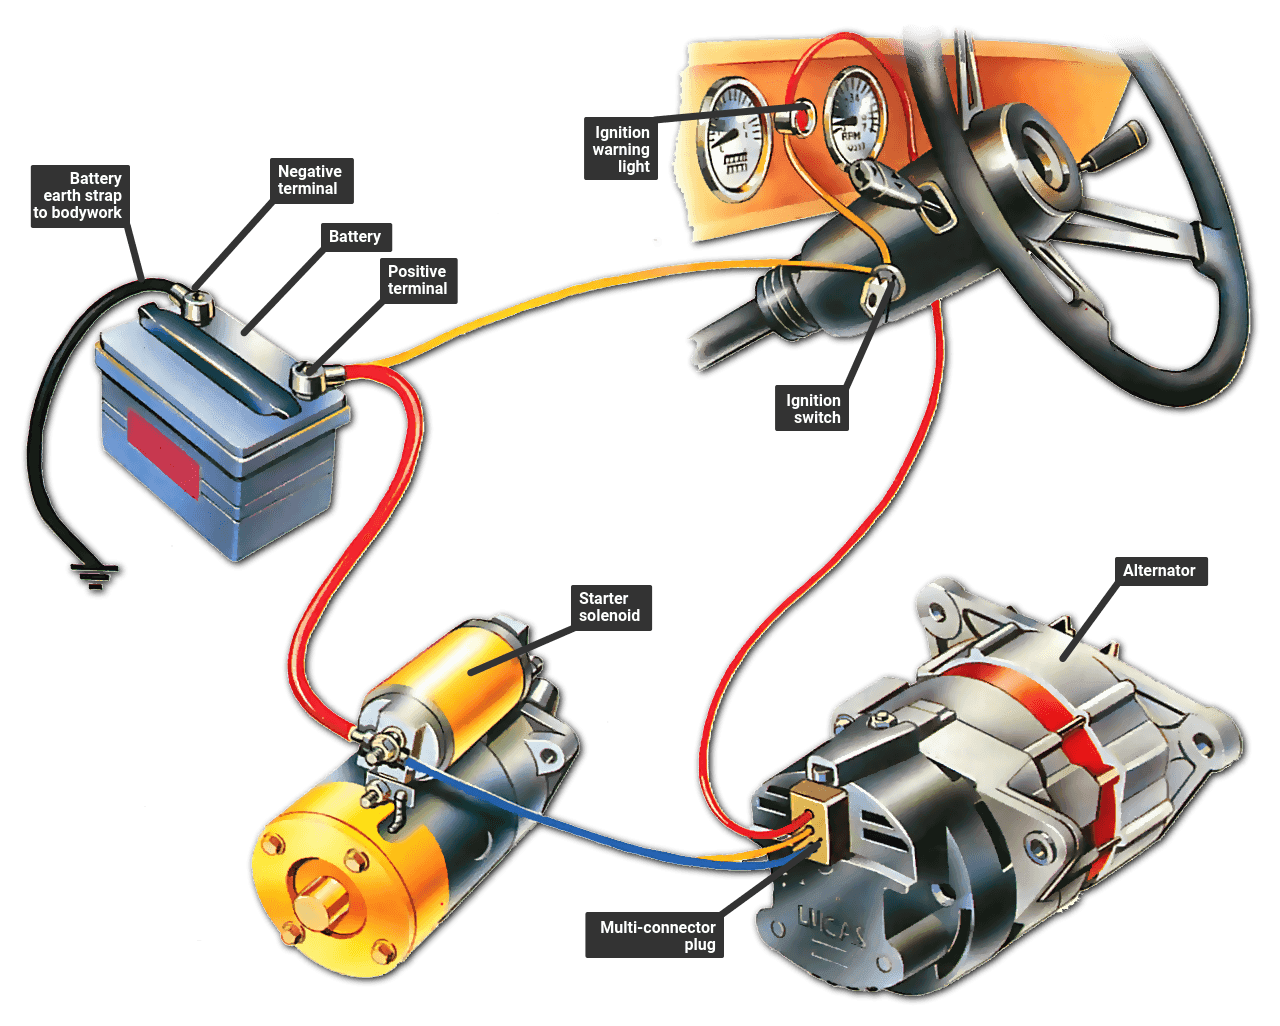 Wiring 3 Way Switch Troubleshooting Diagram Malfunction The Ignition Warning Light How A Car Works Wire Methods